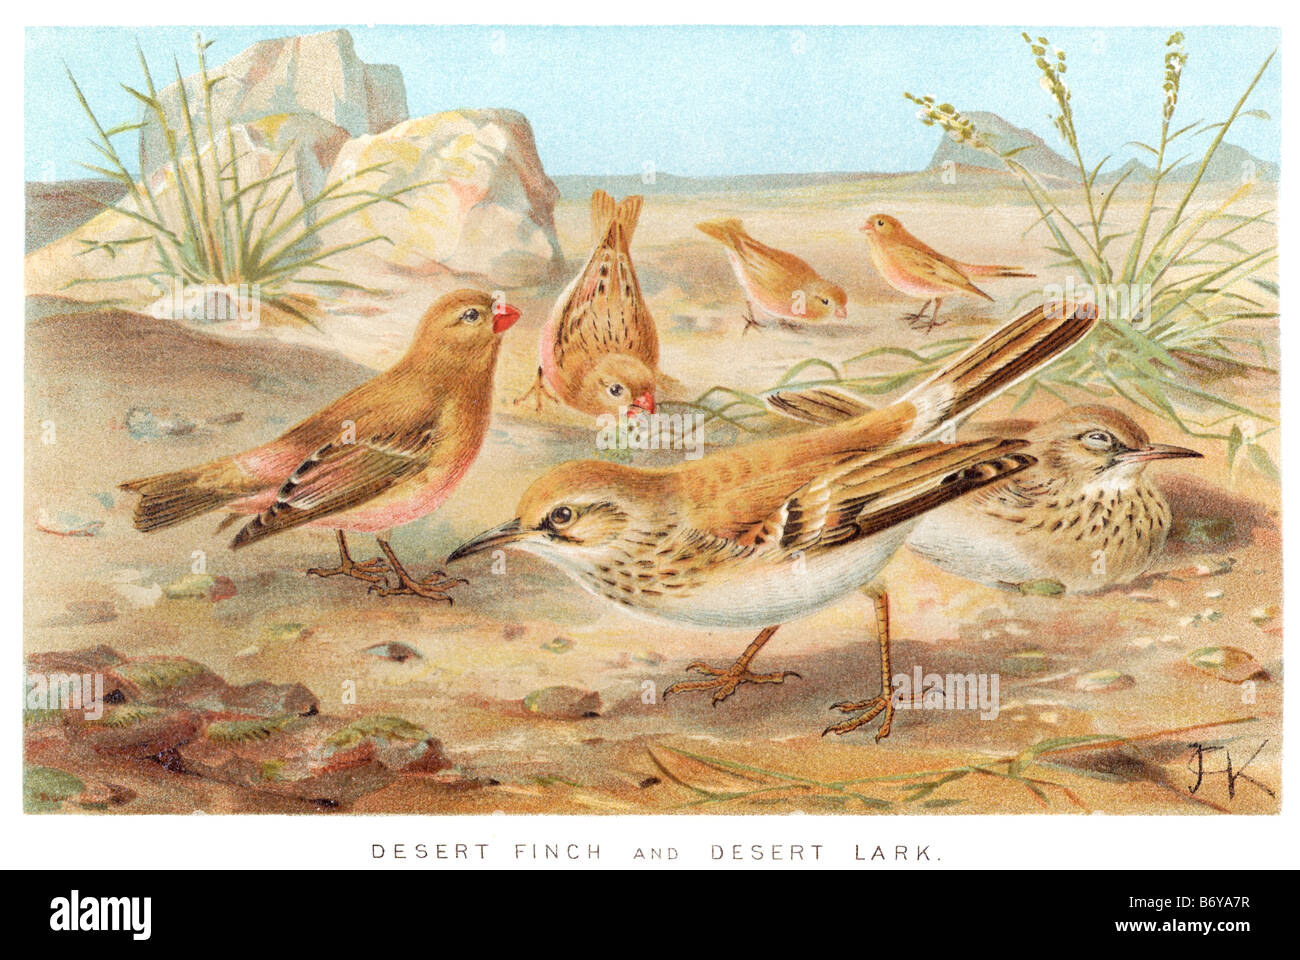 desert finch lark Finches are passerine birds, often seed-eating, found mainly in the northern hemisphere and Africa. - Stock Image